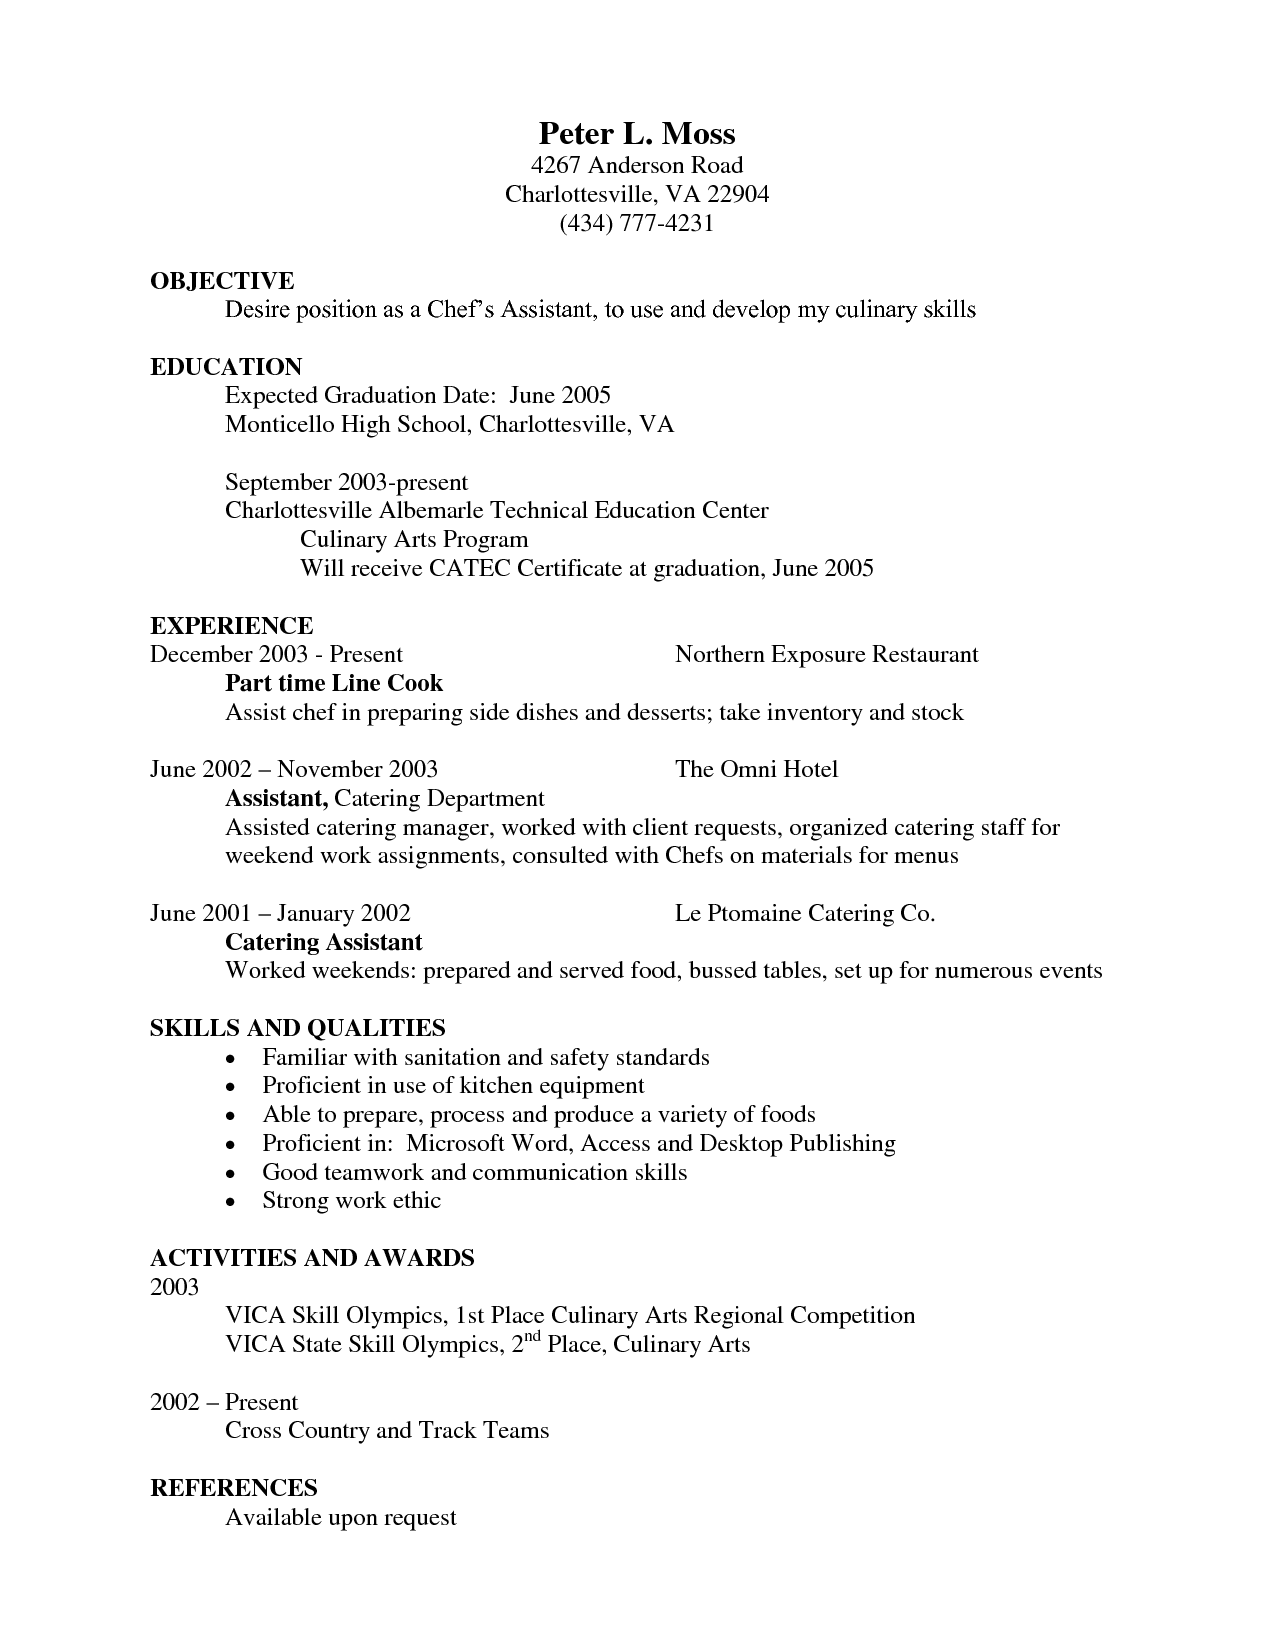 Cook Example Resume Sample For Cooks Cover Letter Chef Resume Resume Skills Resume Template